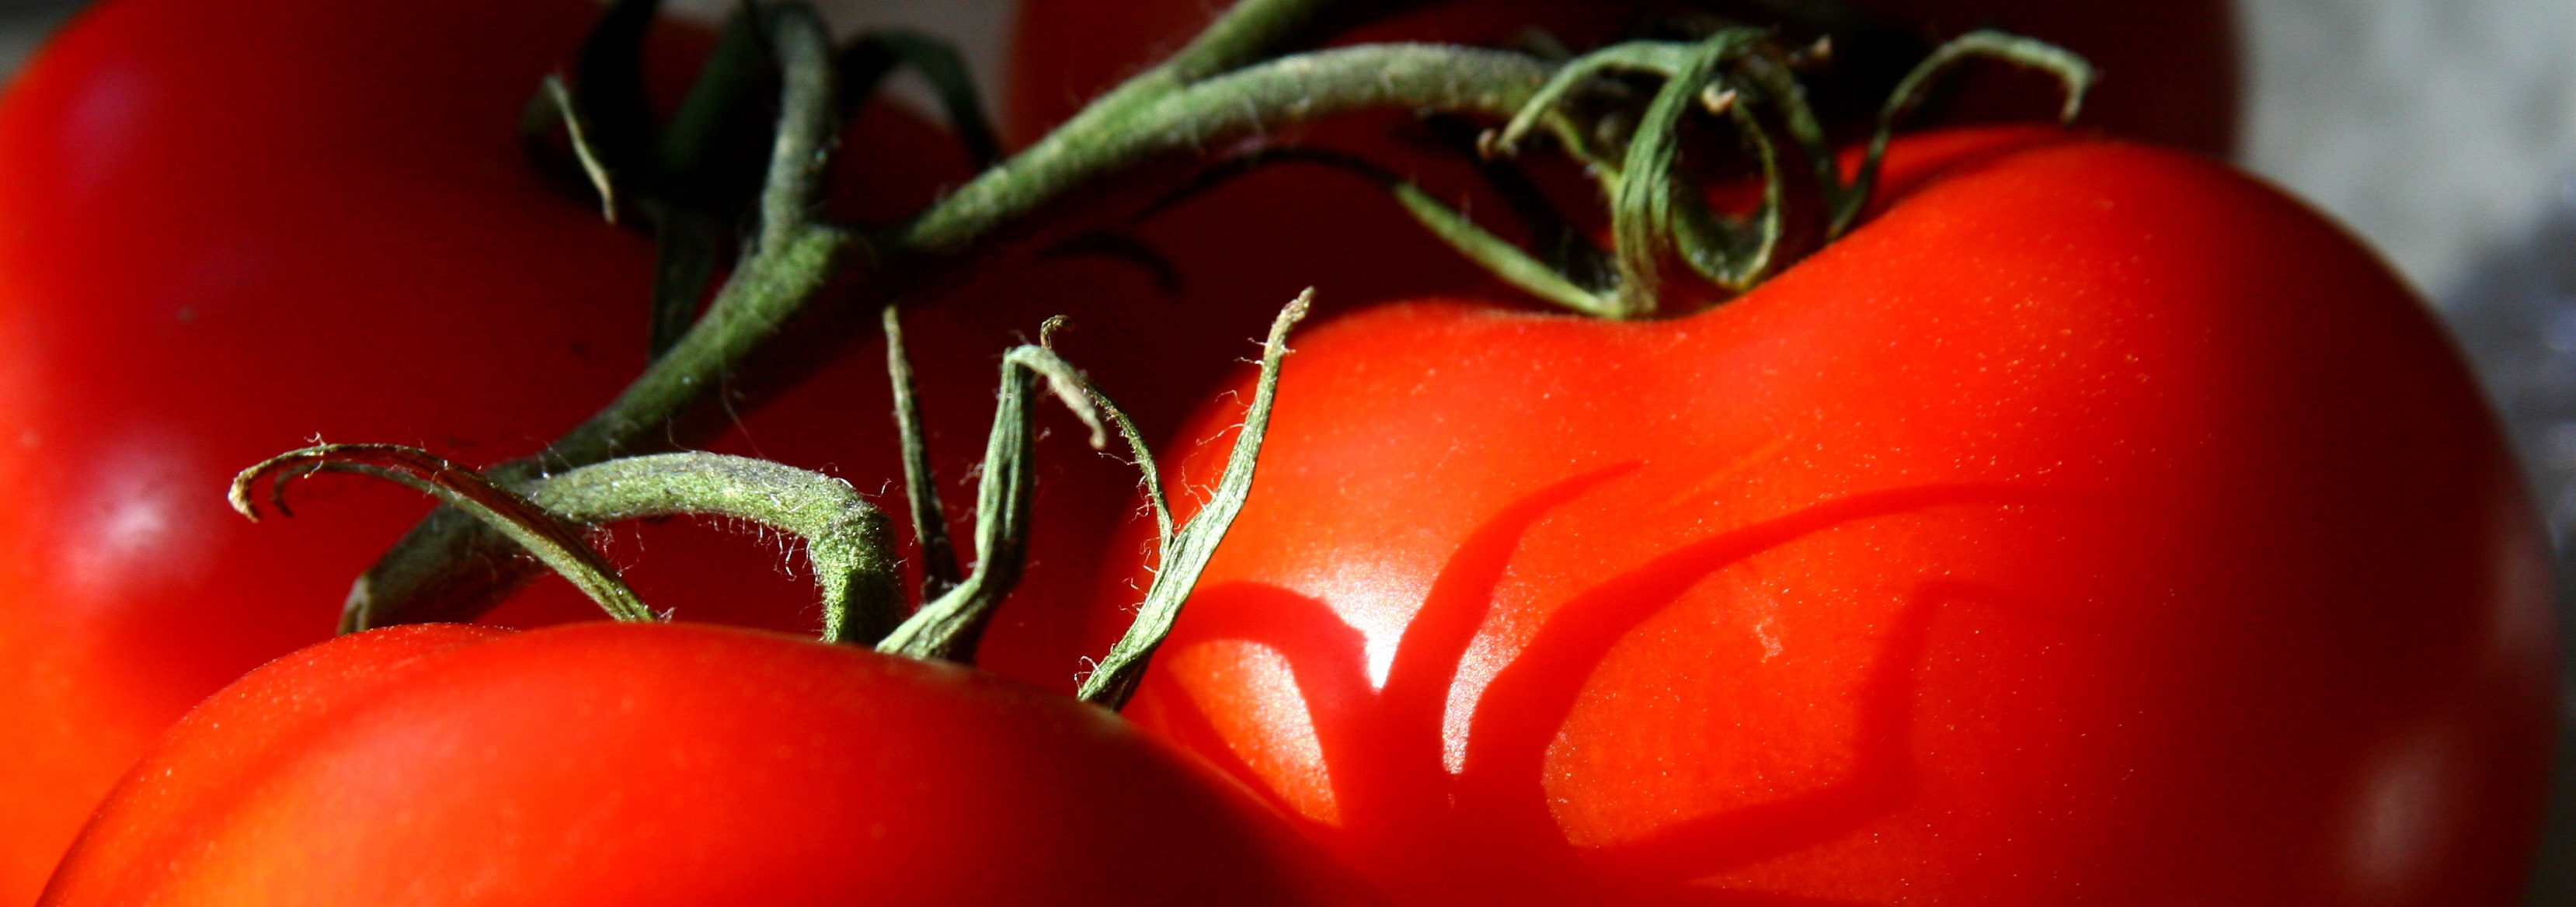 tomatoes-category.jpg